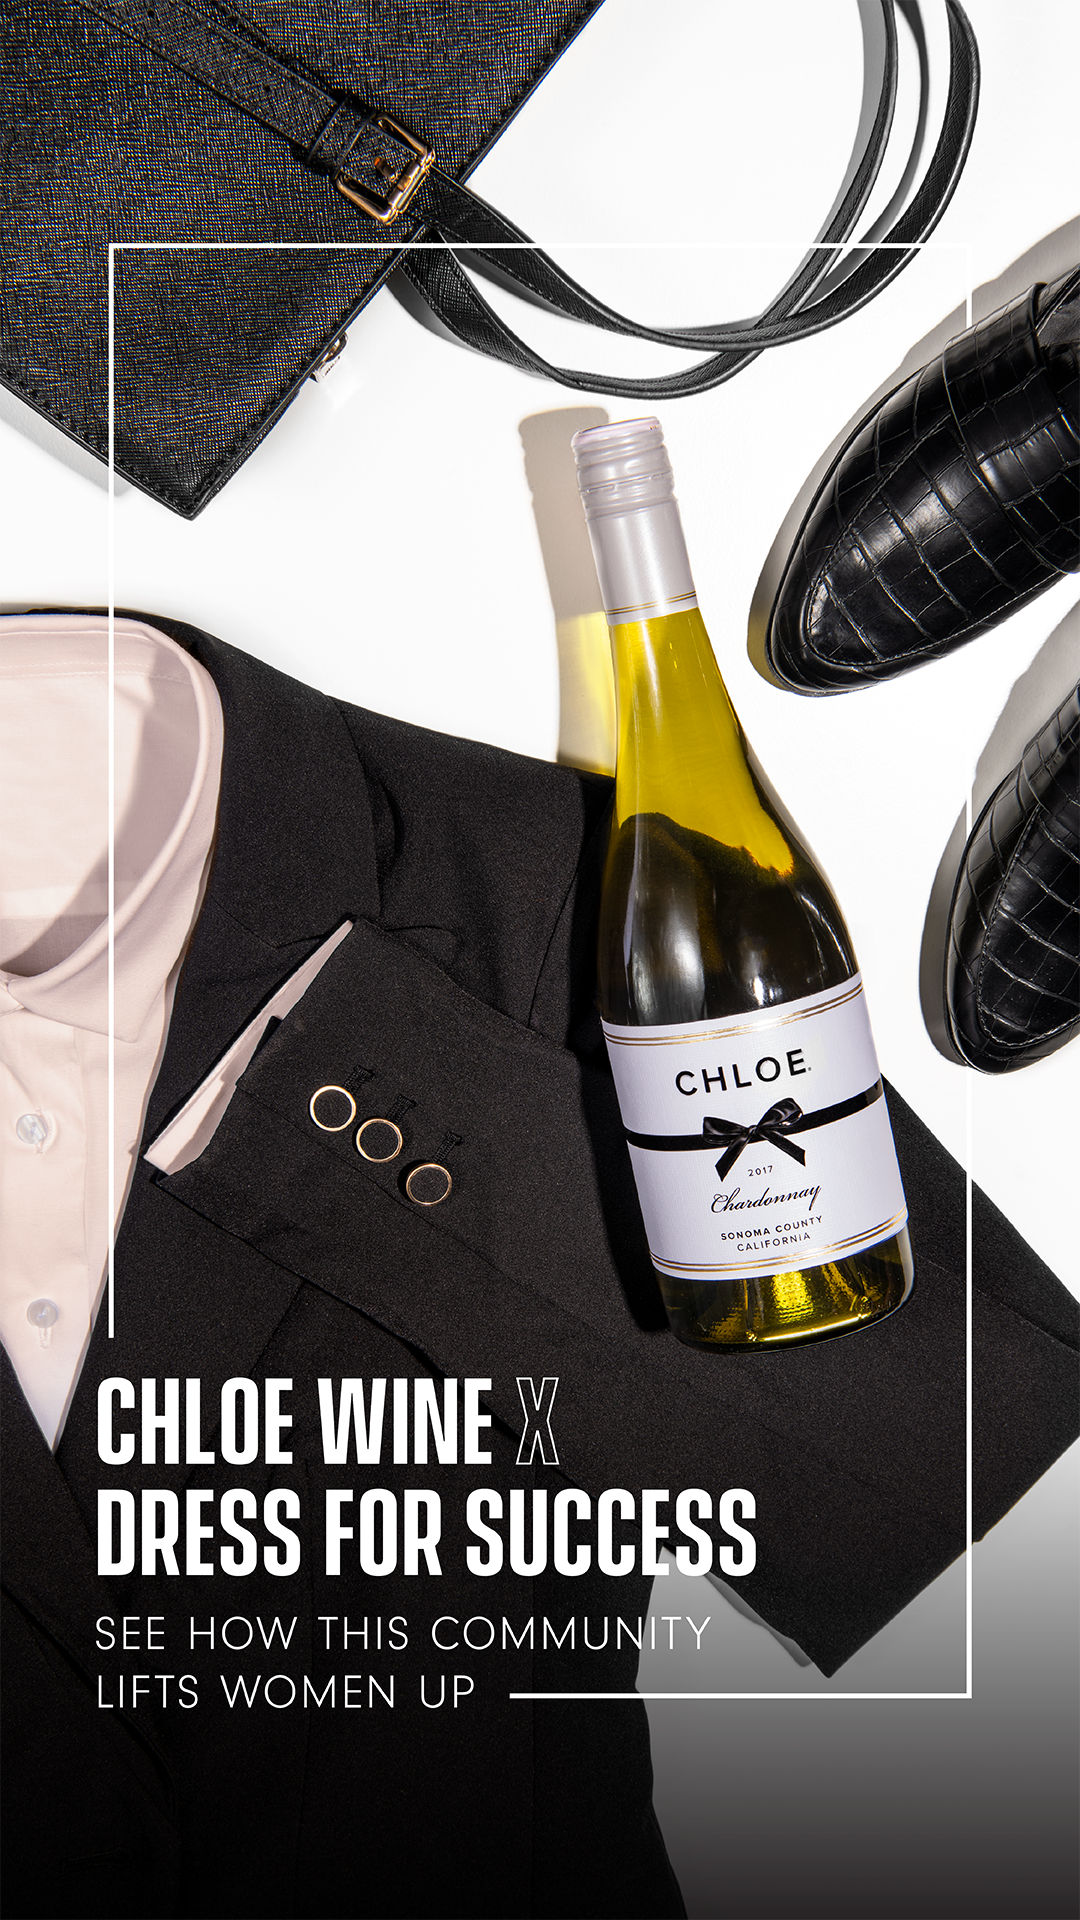 """Businesswear with Chardonnay """"Chloe Wine X Dress for Success, See how this community lifts women up"""""""